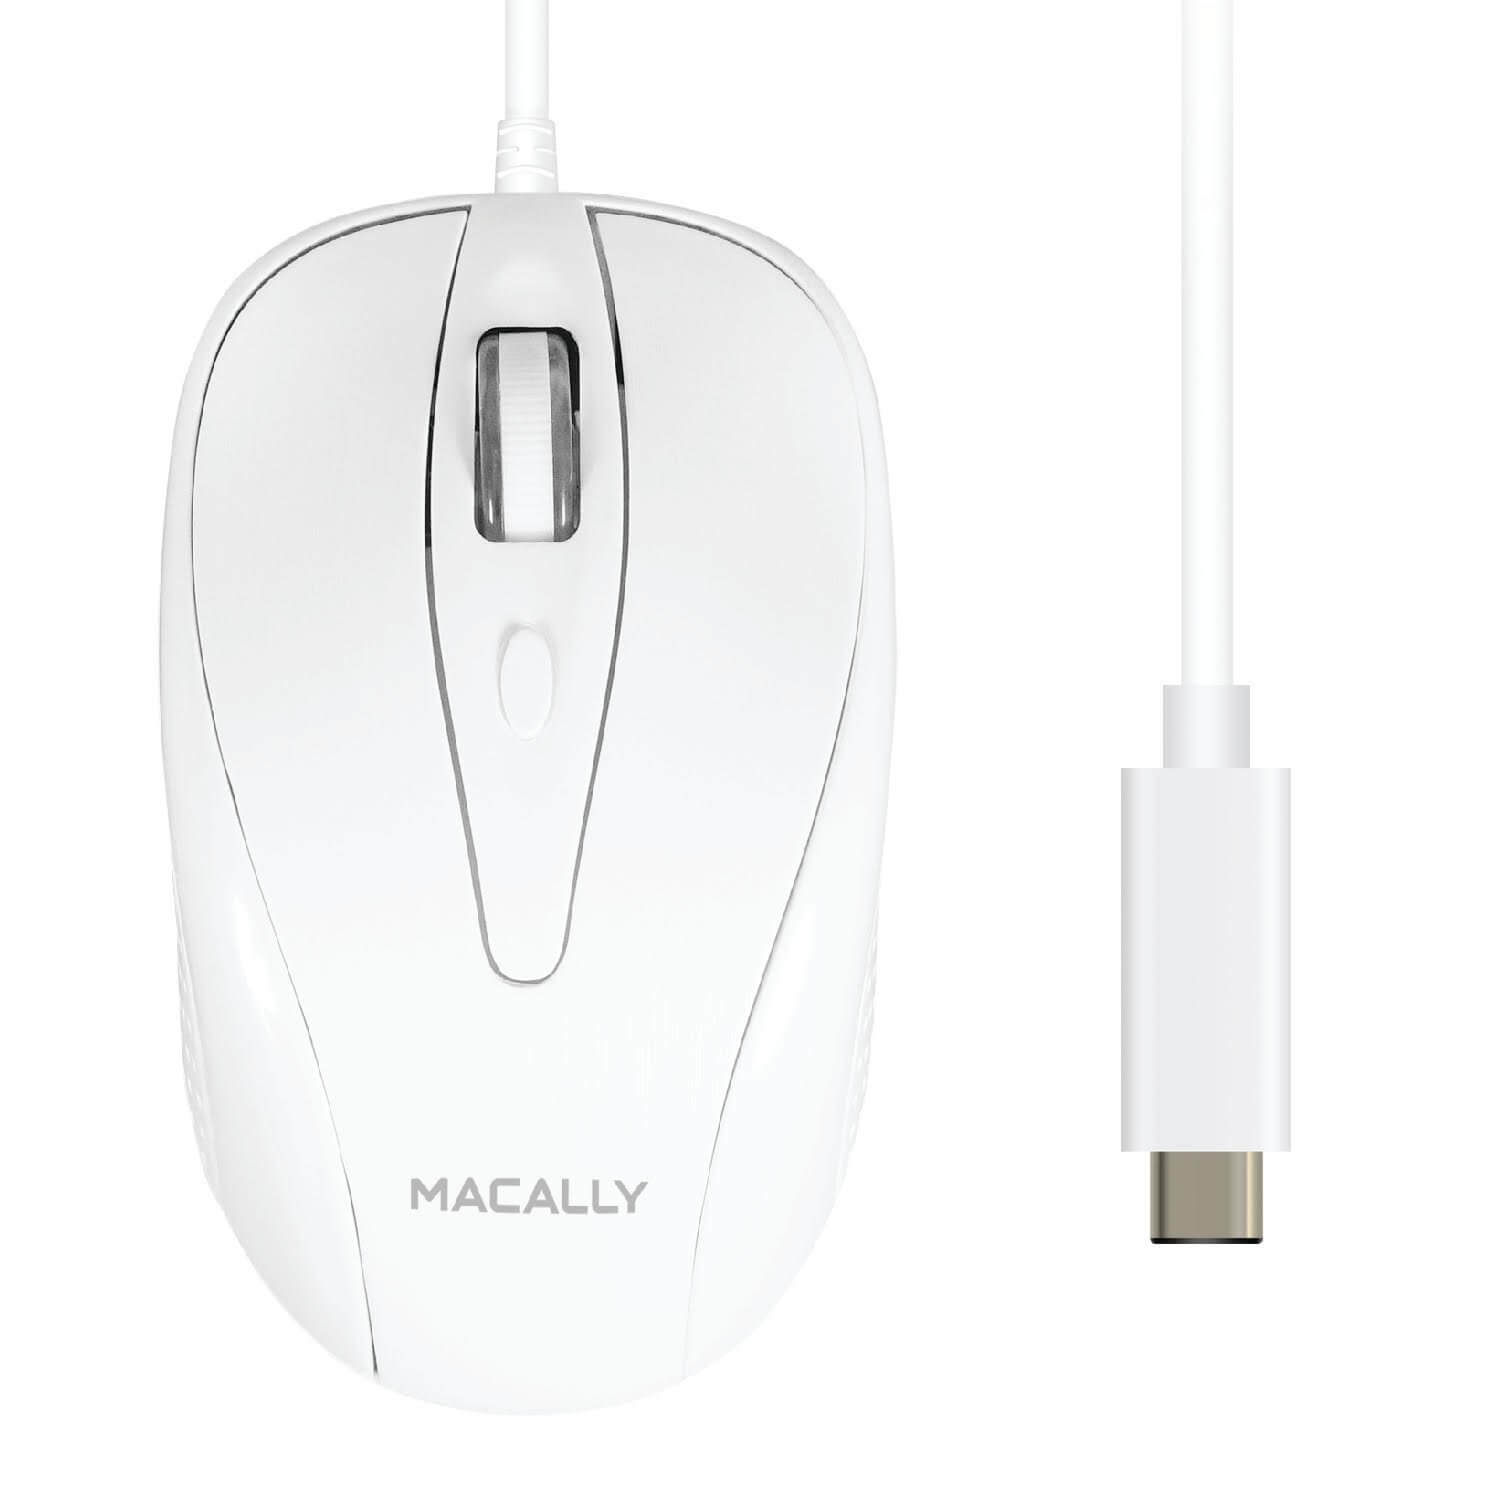 Macally TurboC Mouse - USB-C оптична мишка за PC и Mac